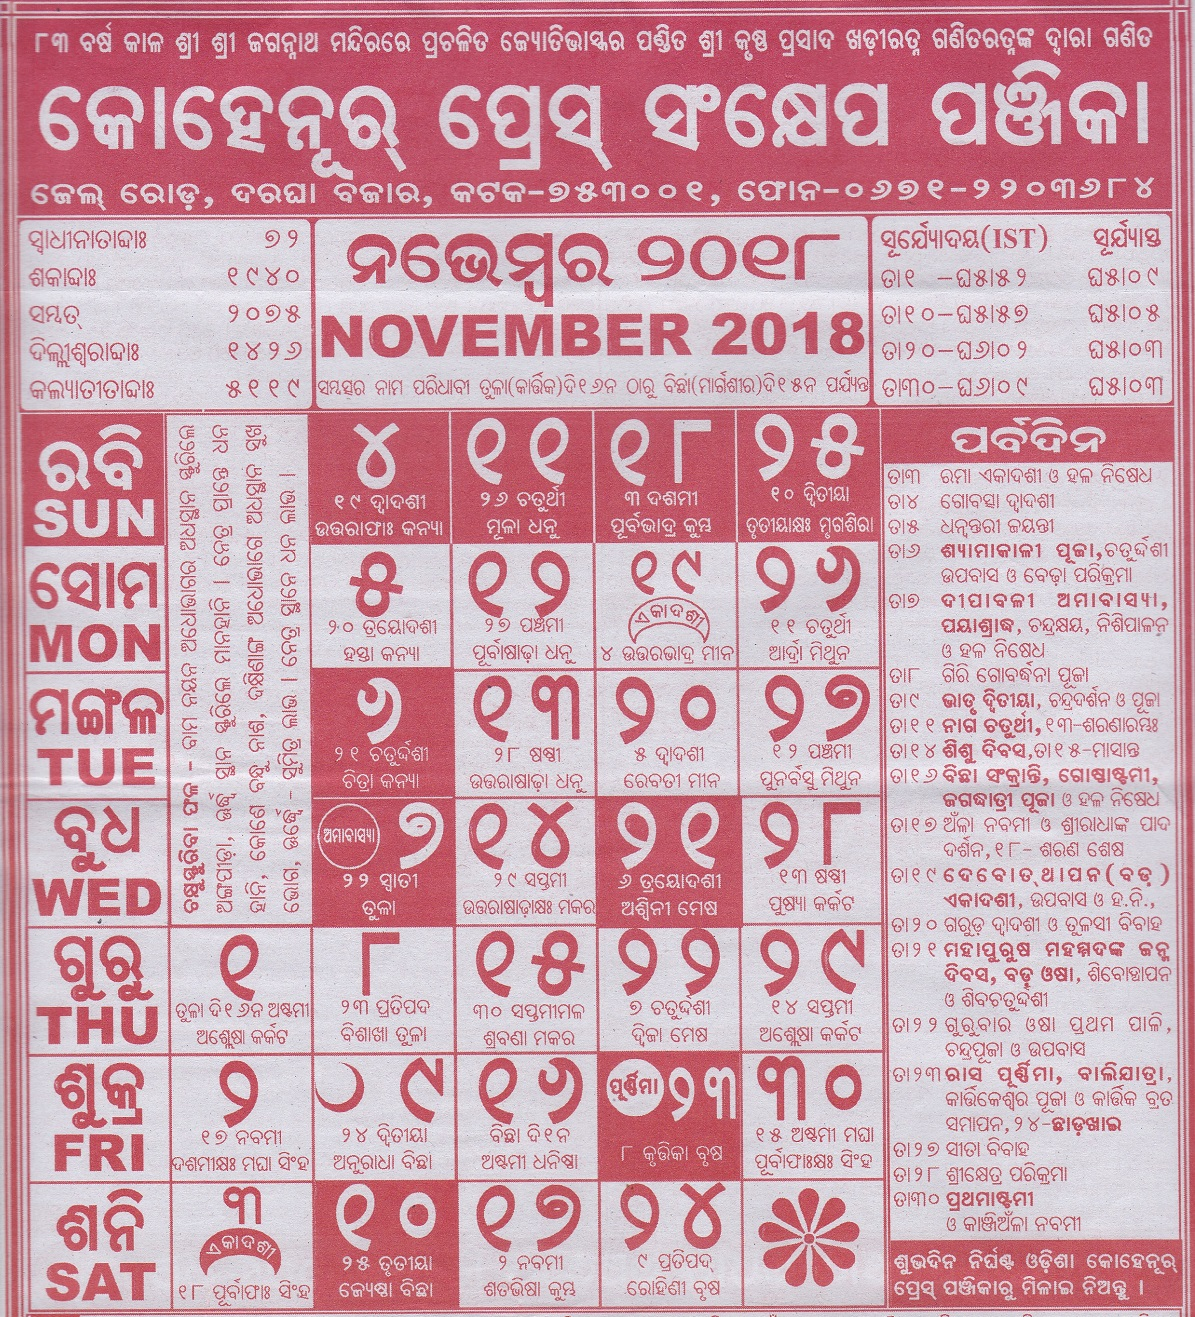 Odia Kohinoor Calendar for November 2018